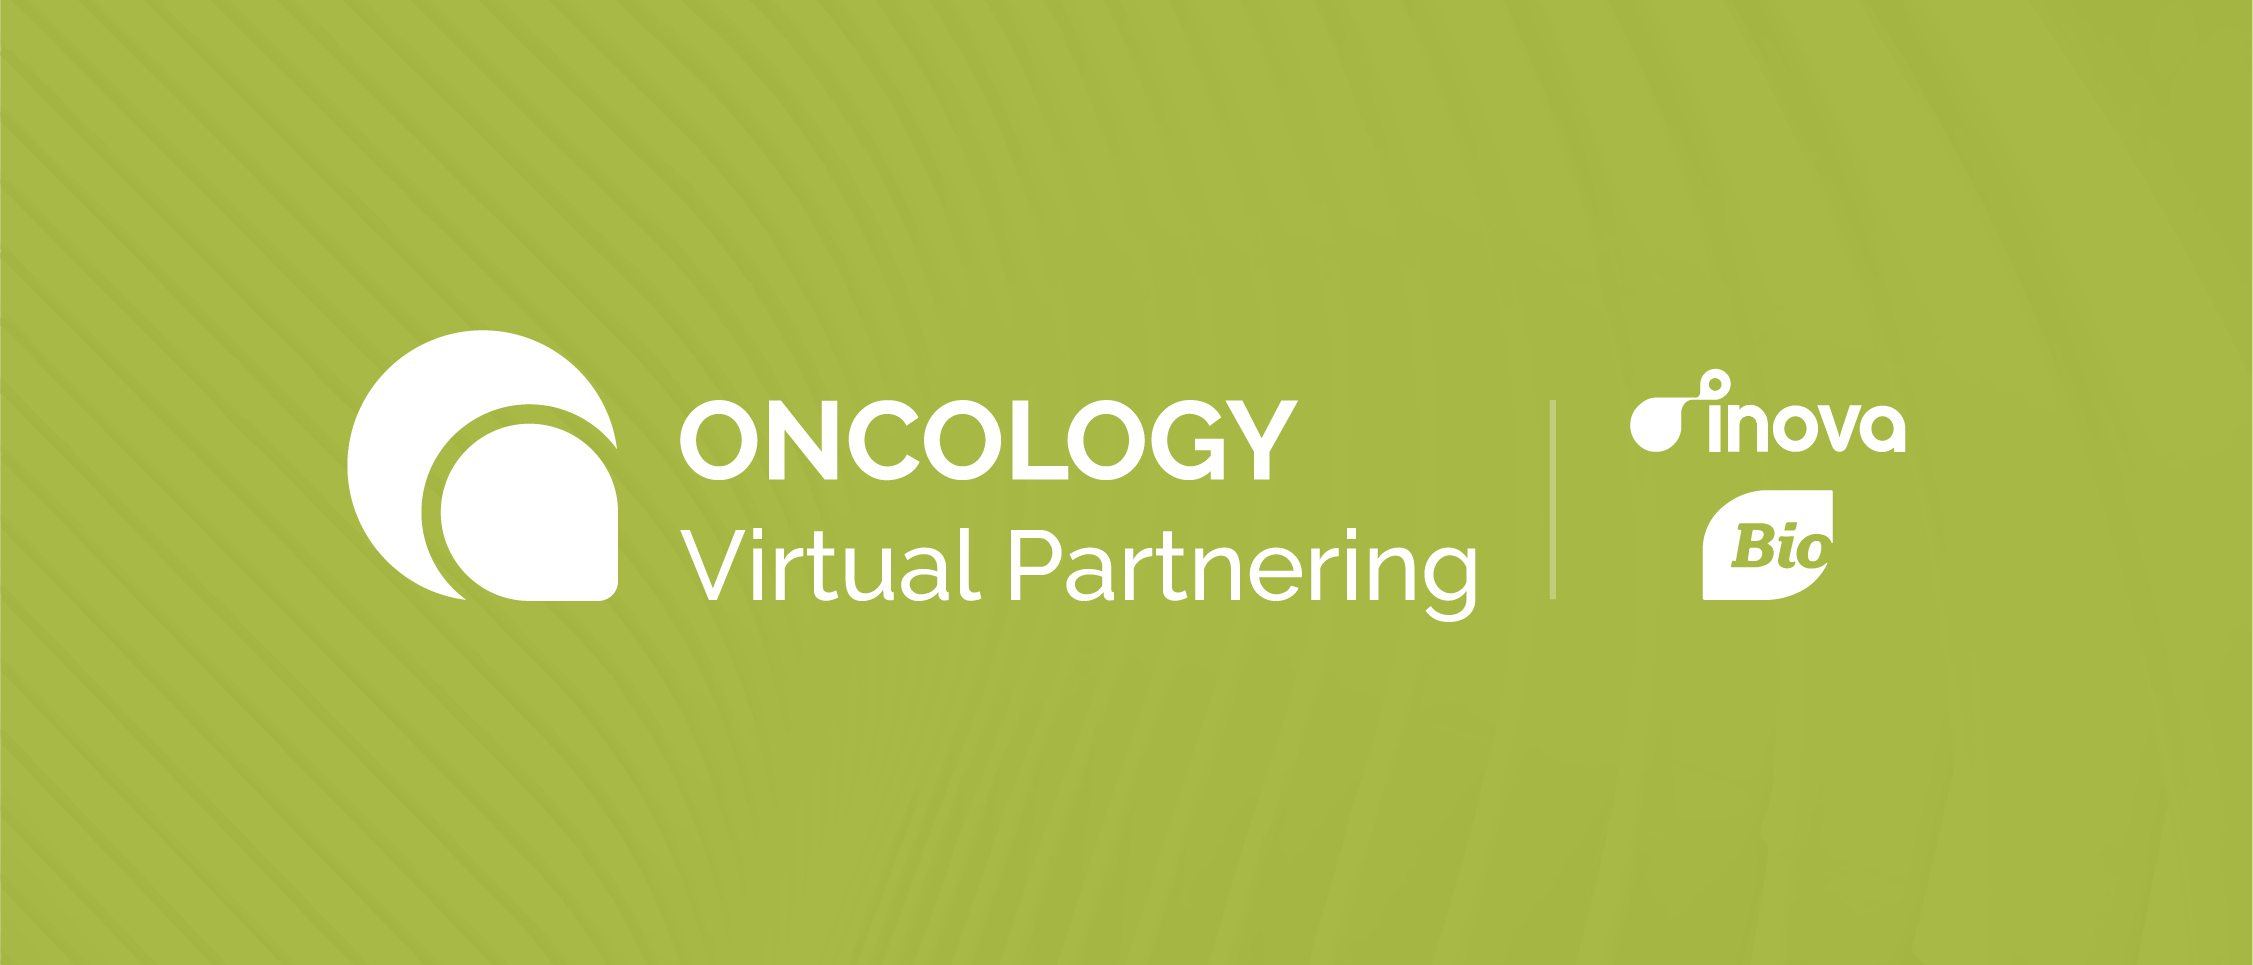 Oncology Virtual Partnering